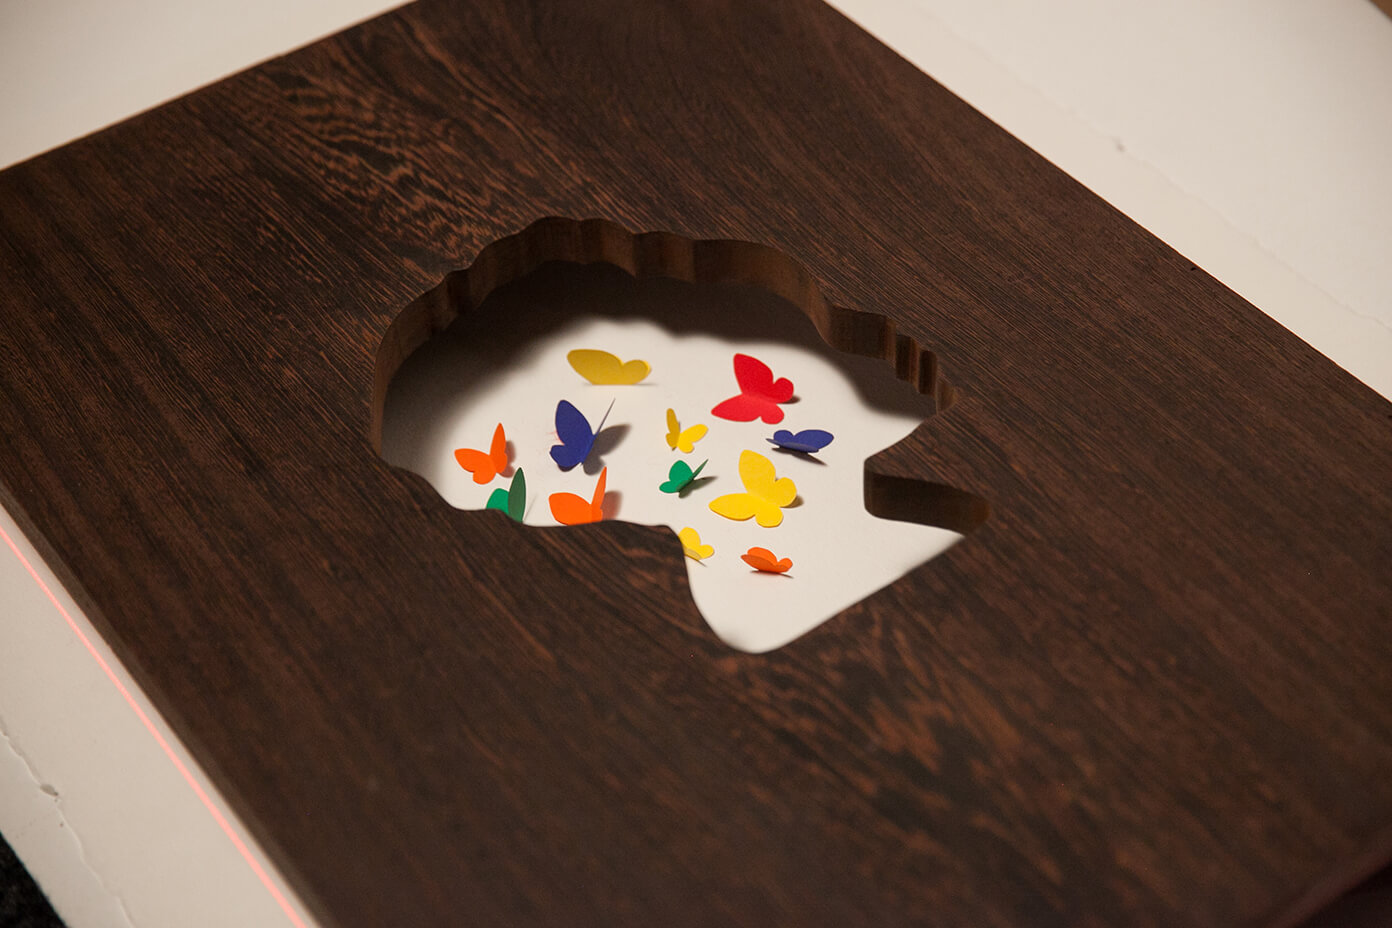 Closeup depiction of cut wood in the shape of a young woman's head, with colorful butterflies inside